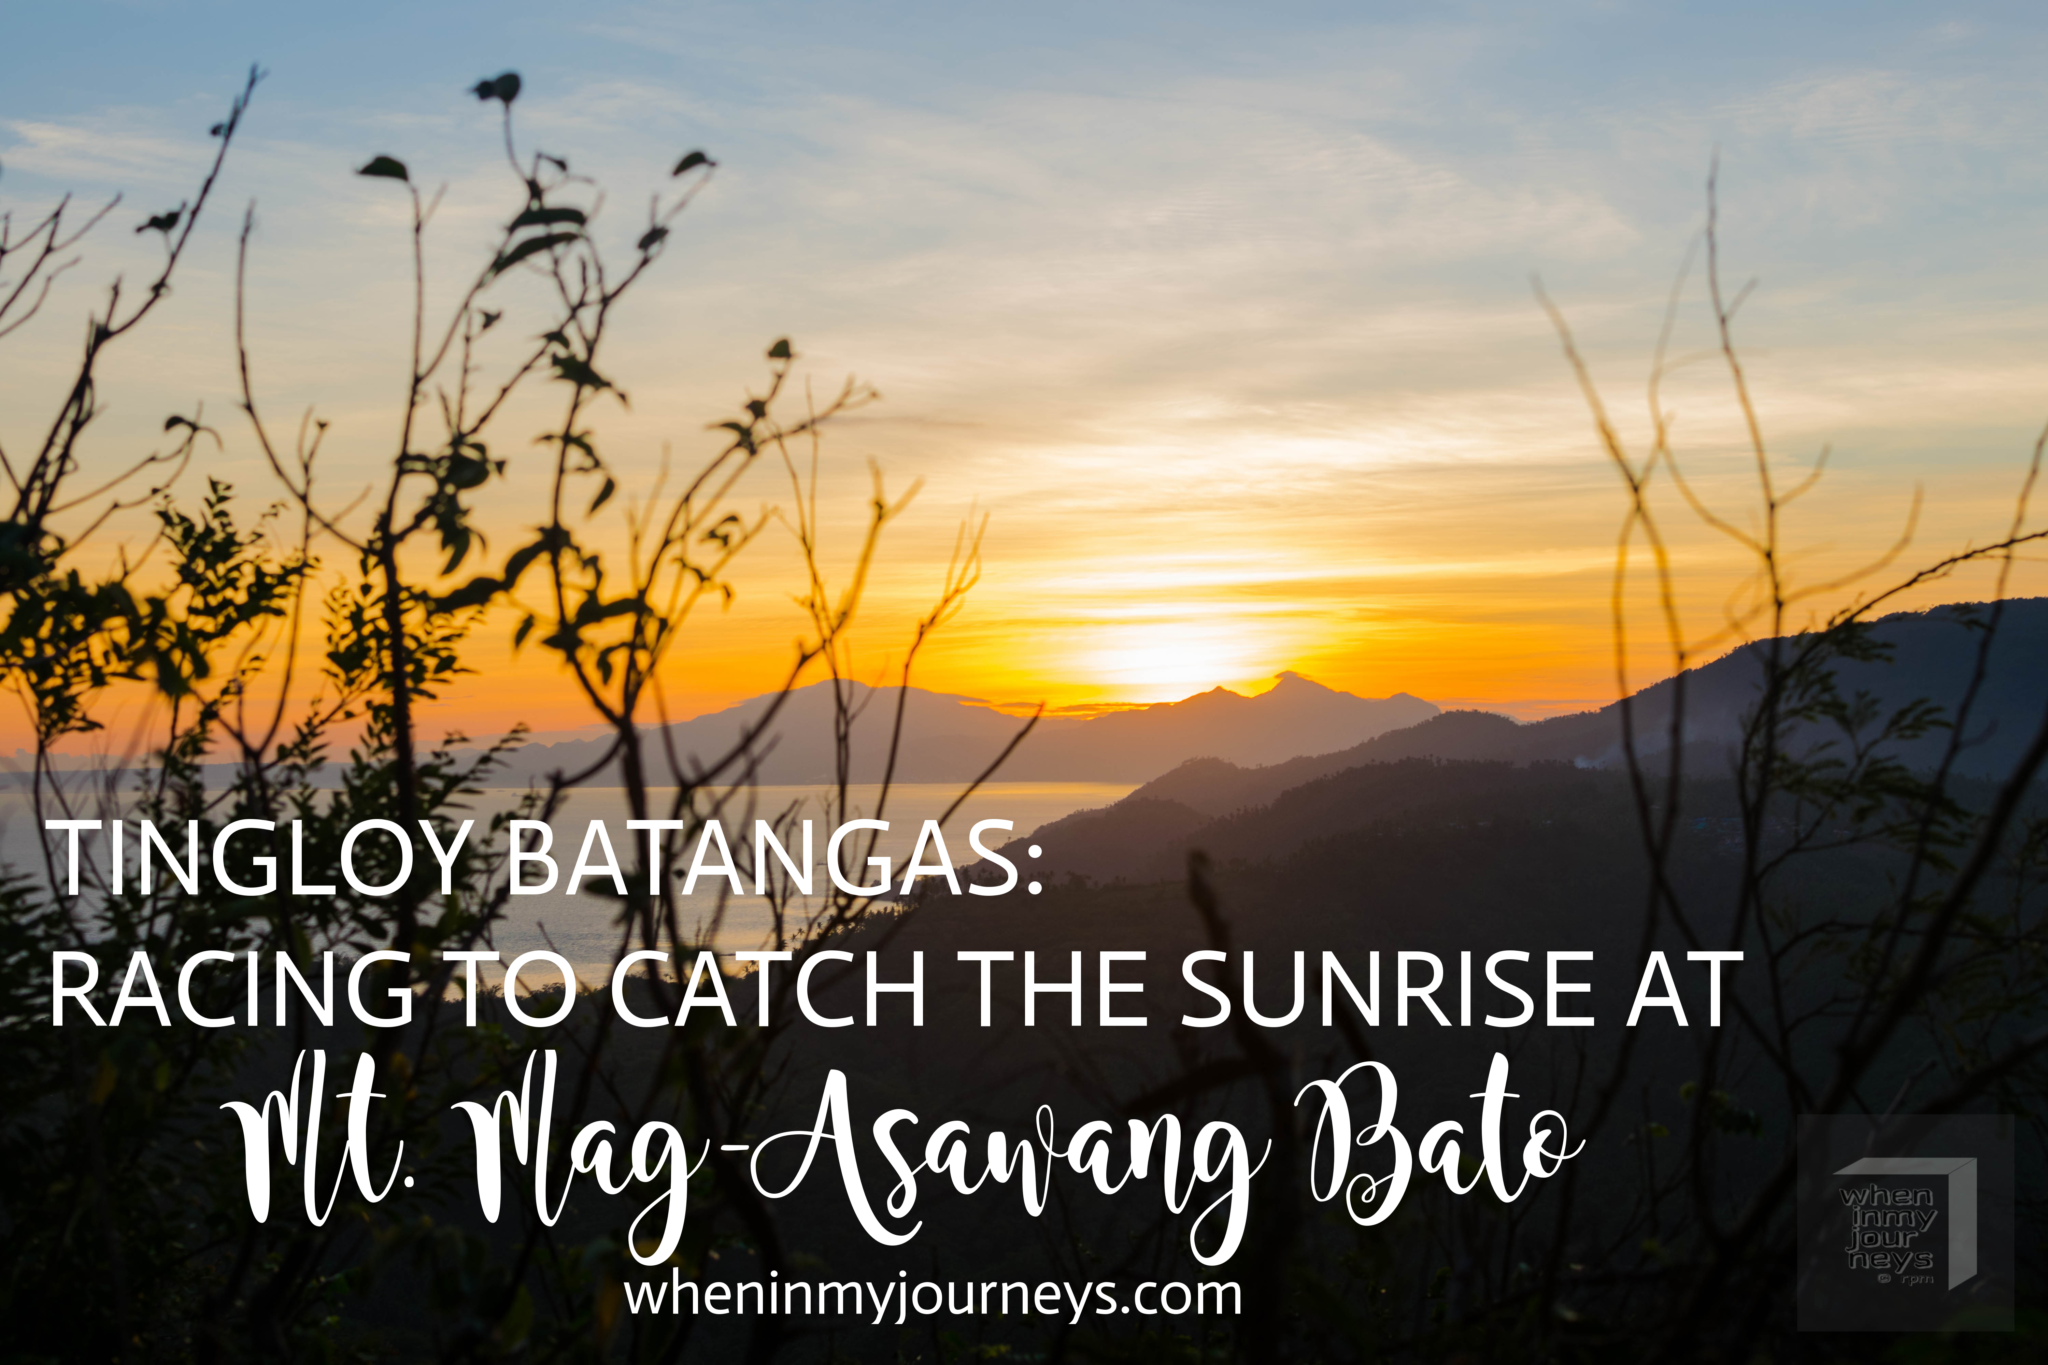 Tingloy Batangas - Racing to Catch the Sunrise at Mt. Mag-Asawang Bato